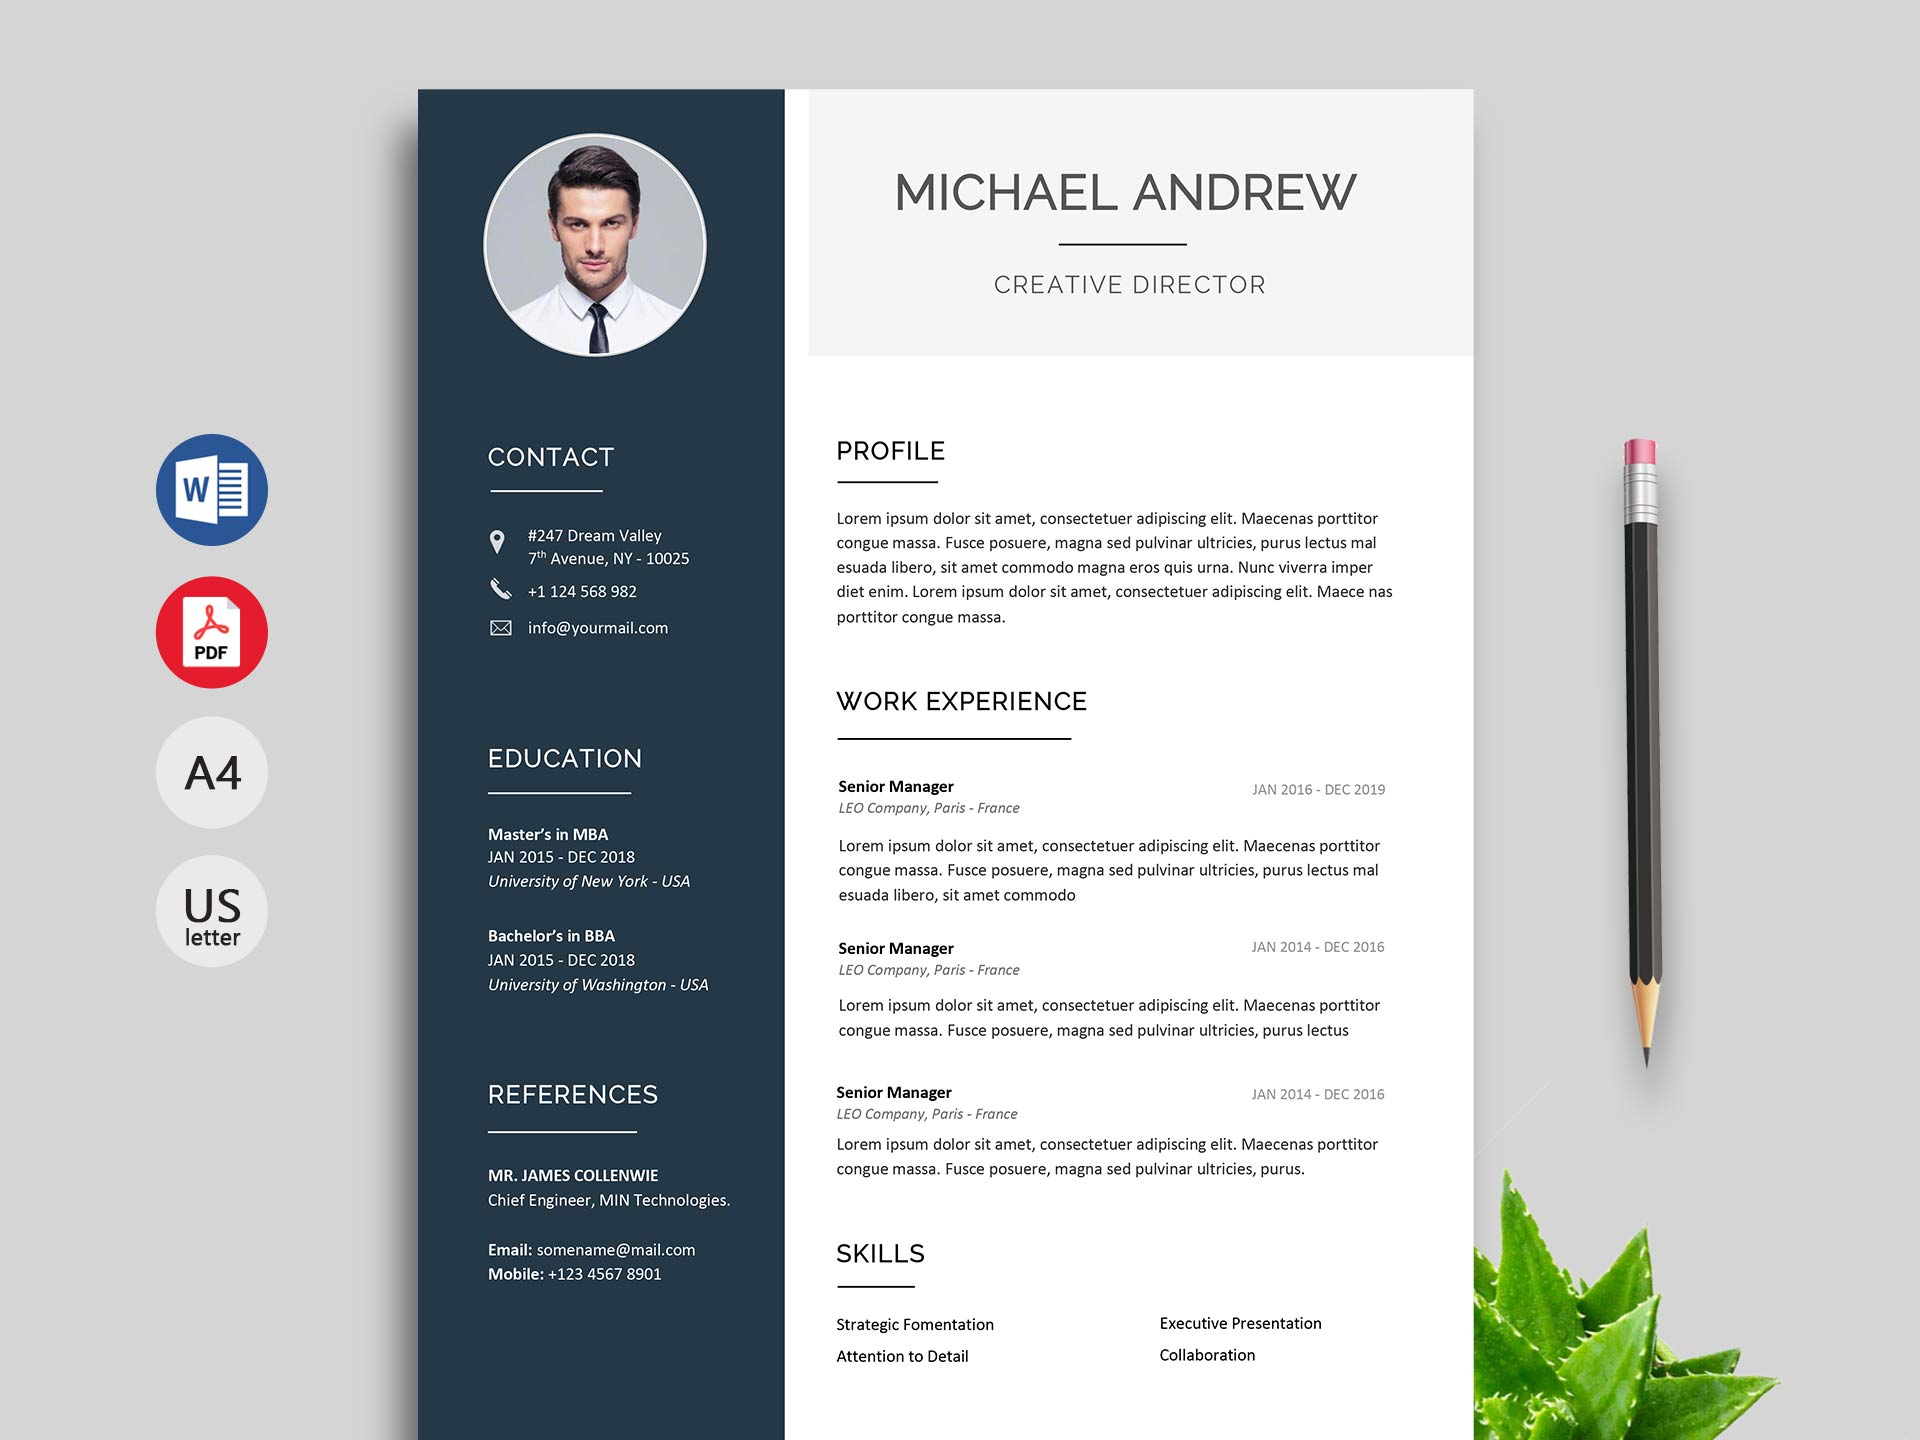 free resume cv templates in word format resumekraft prime template samples for over Resume Free Resume Templates 2020 Word